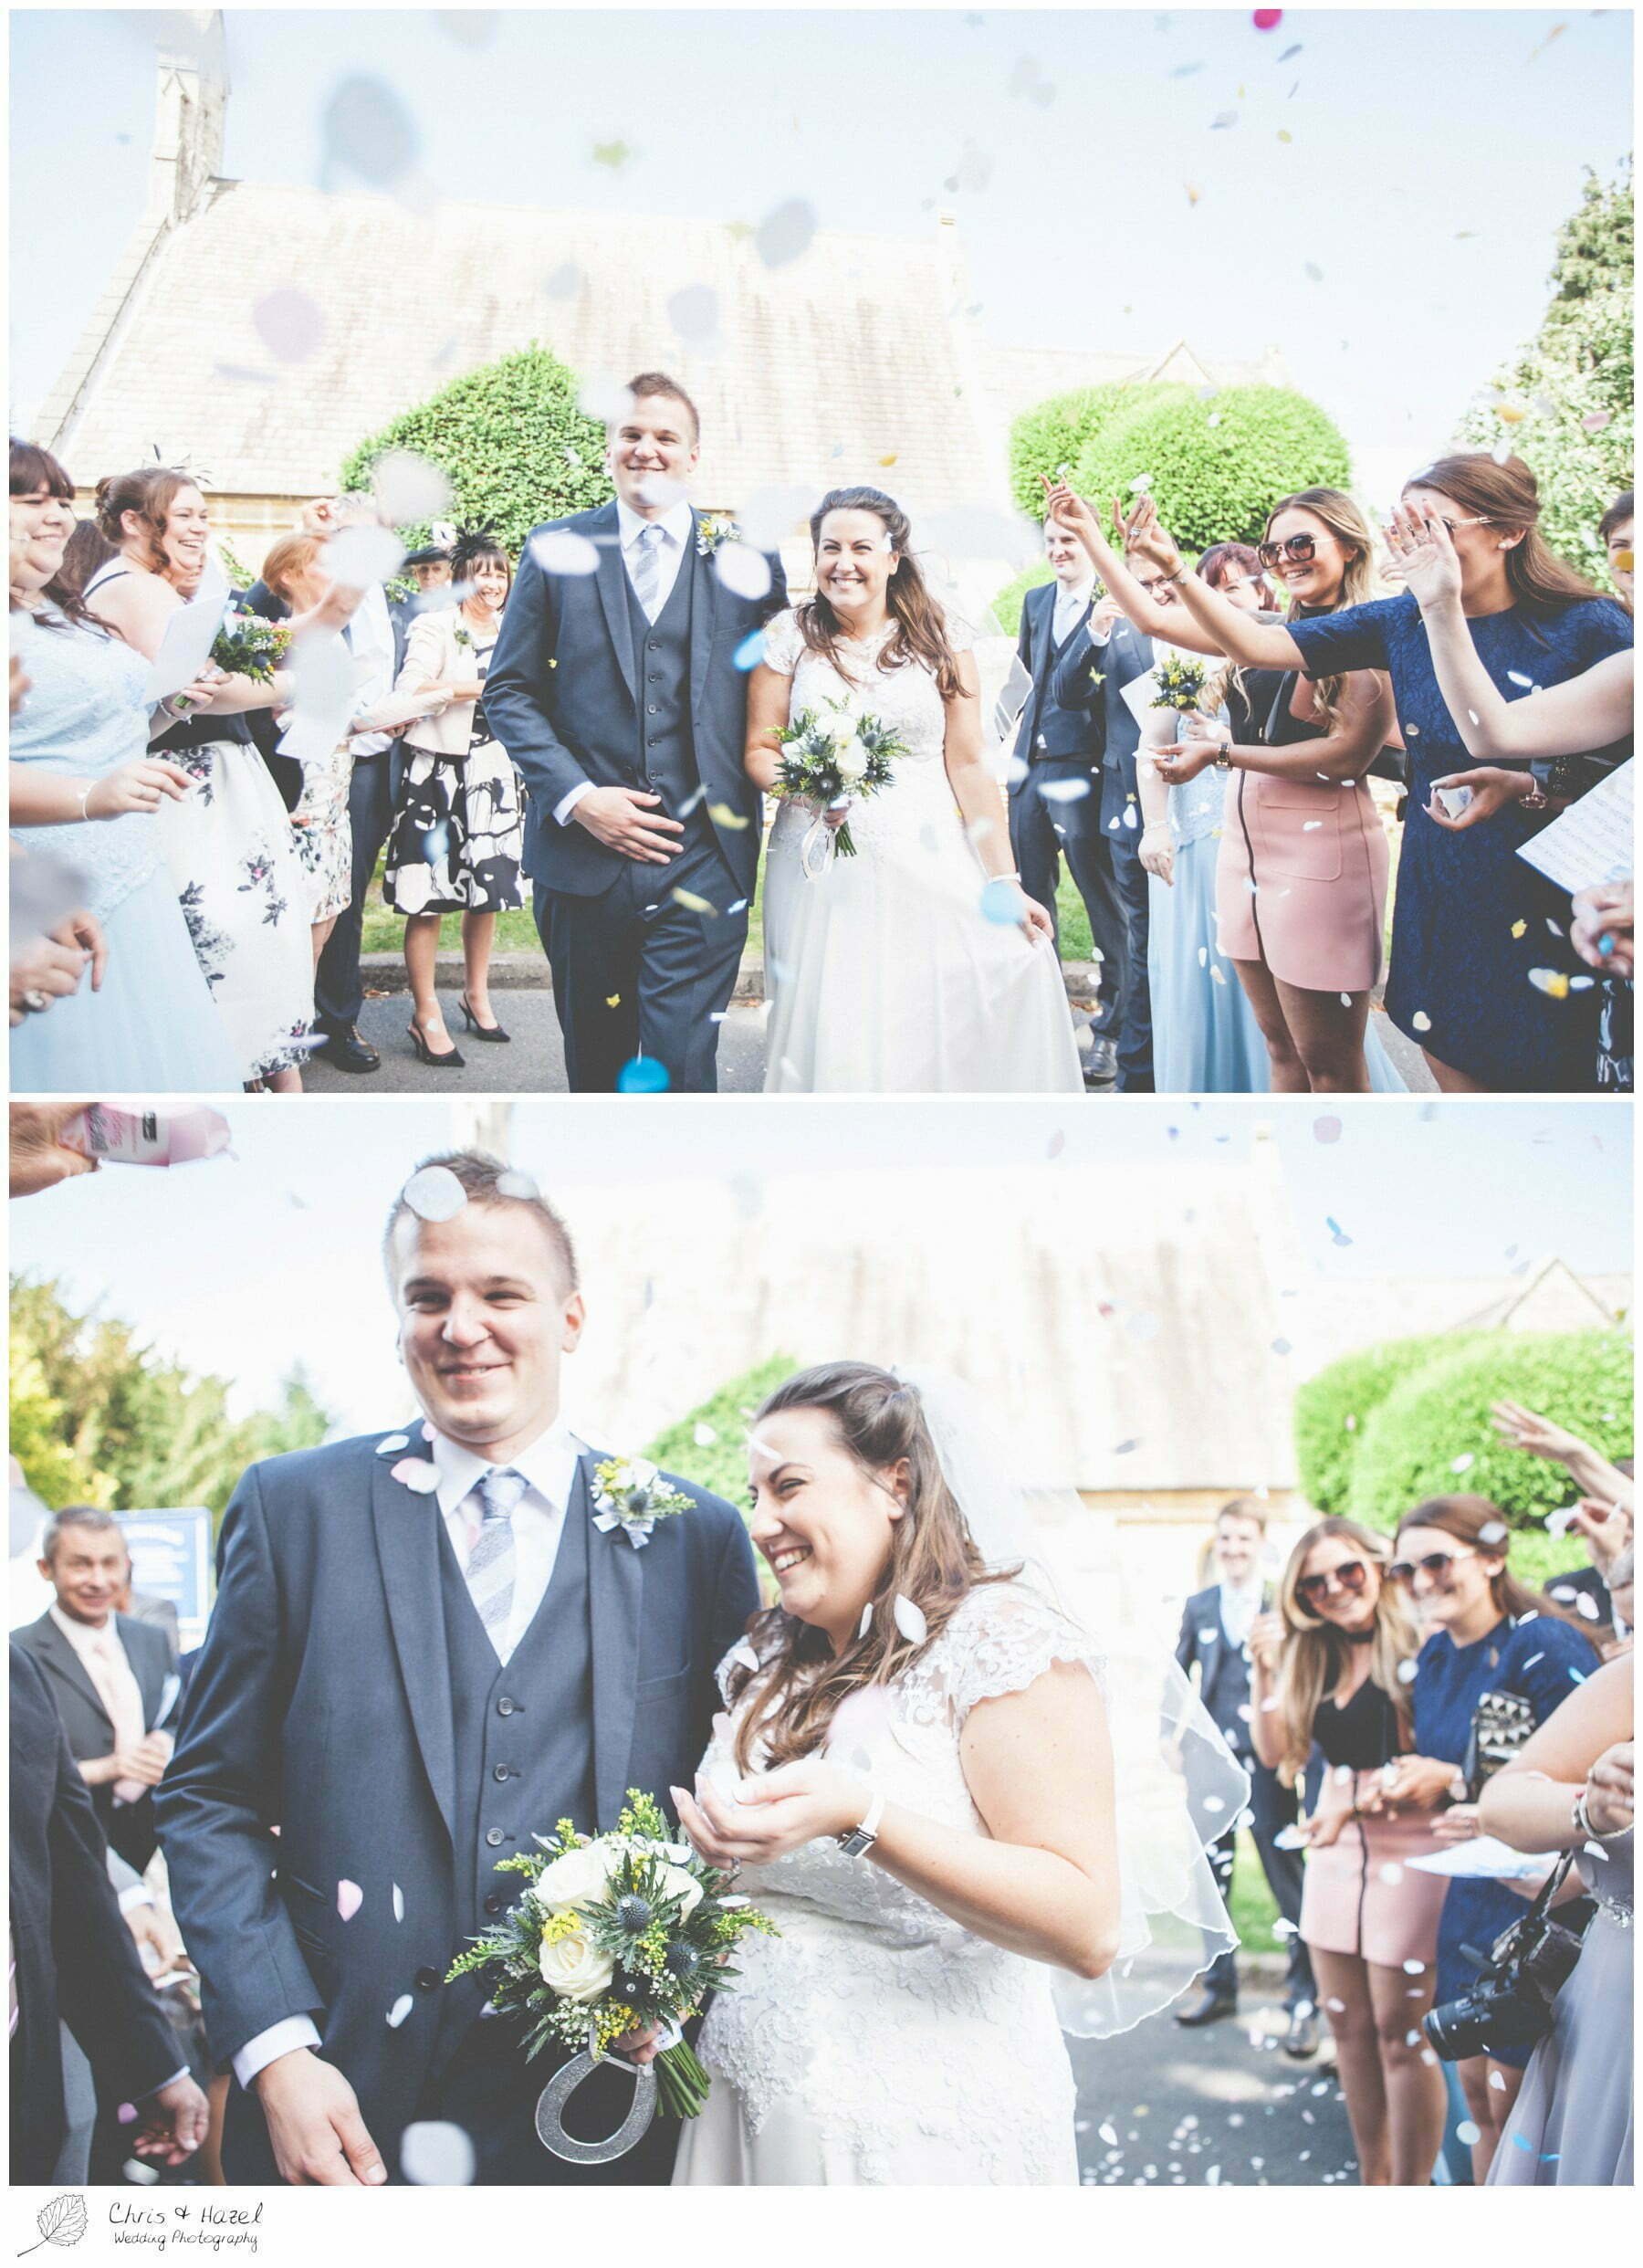 confetti shot, st marys church, wedding, south milford Wedding Photographer, the engine shed, Wedding Photography wetherby, Chris and Hazel Wedding Photography, stevie pollard, stevie standerline, paul standerline,